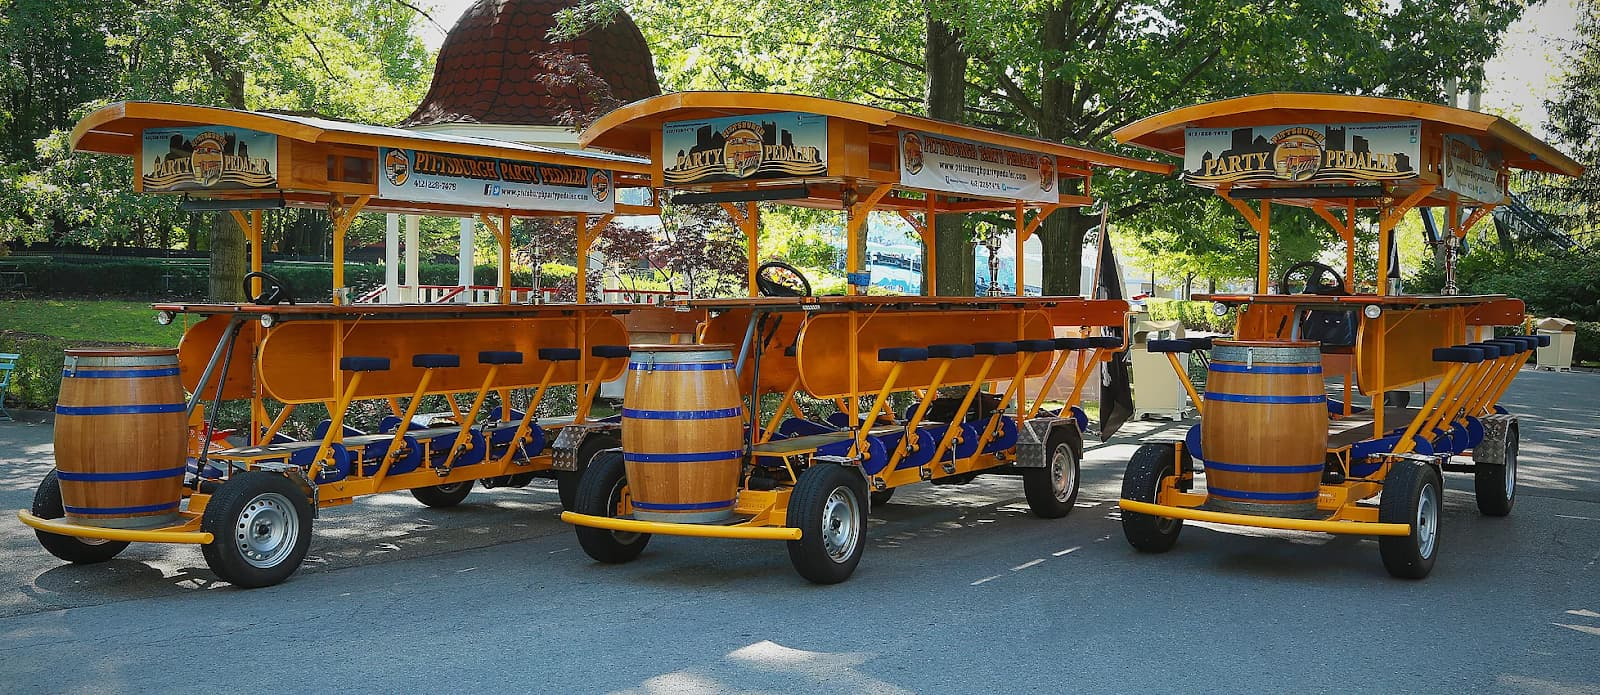 Party Bikes in downtown Pittsburgh